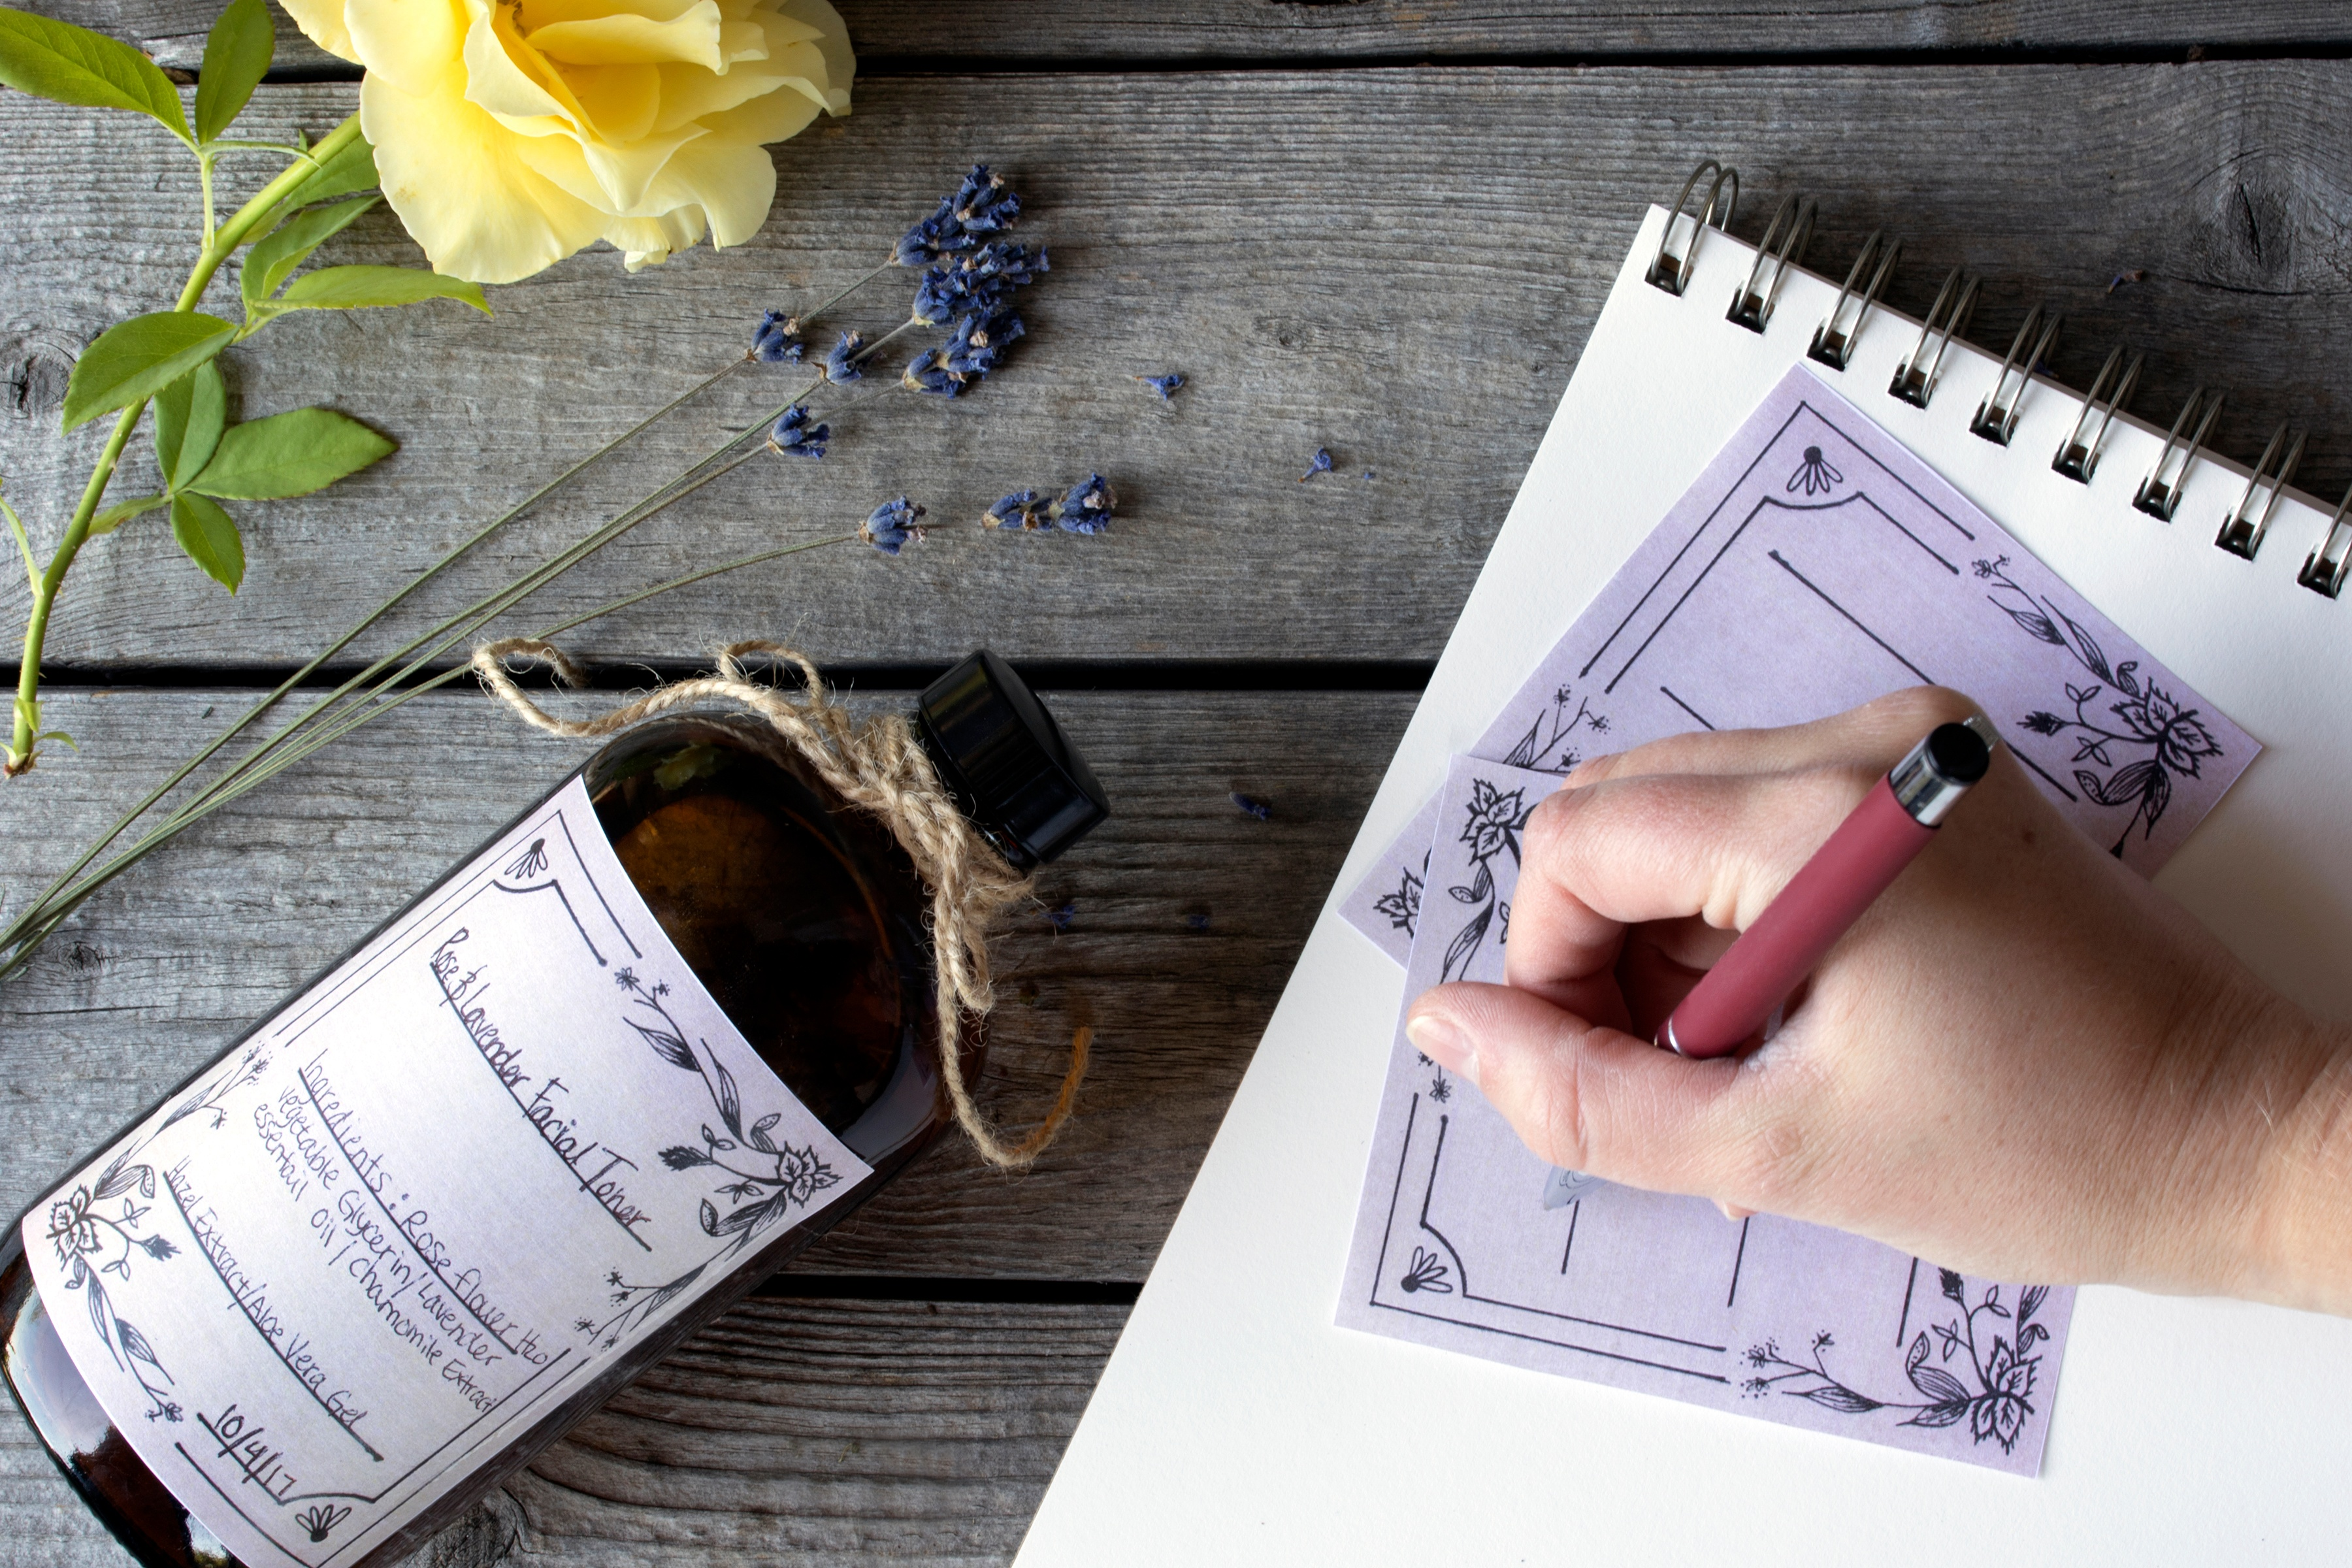 Person writing handmade labels for DIY crafts and goods